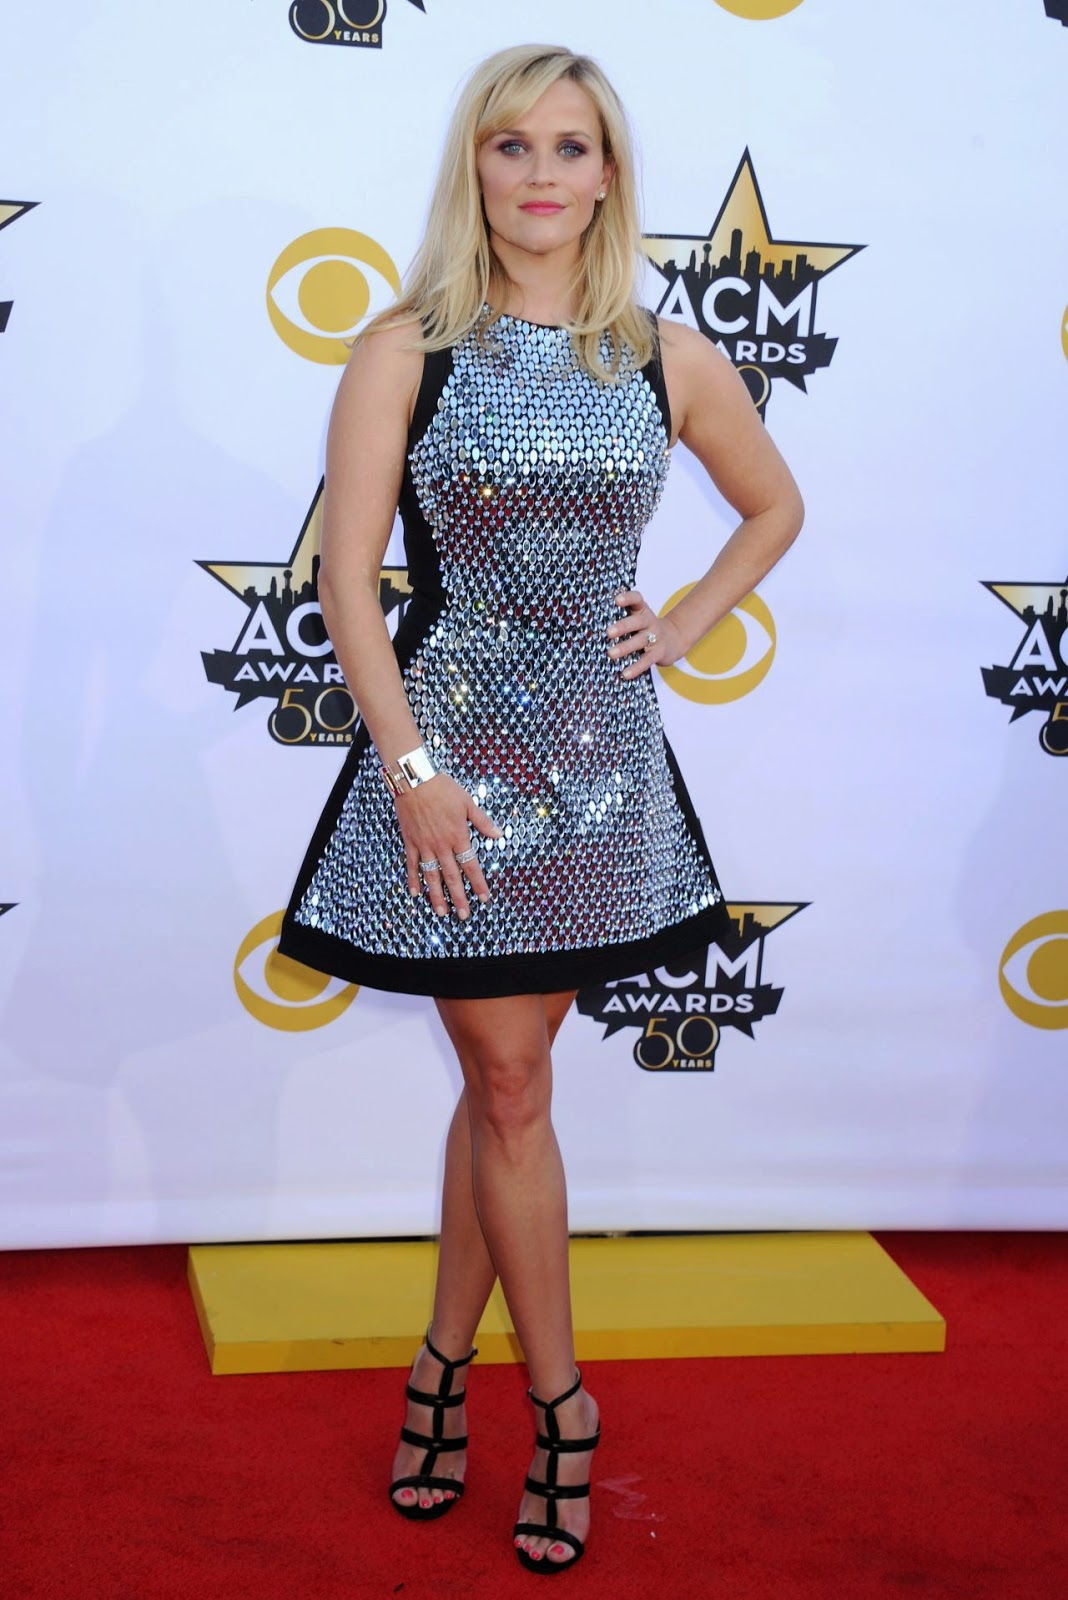 Reese Witherspoon wears a David Koma mini dress to the 2015 ACM Awards